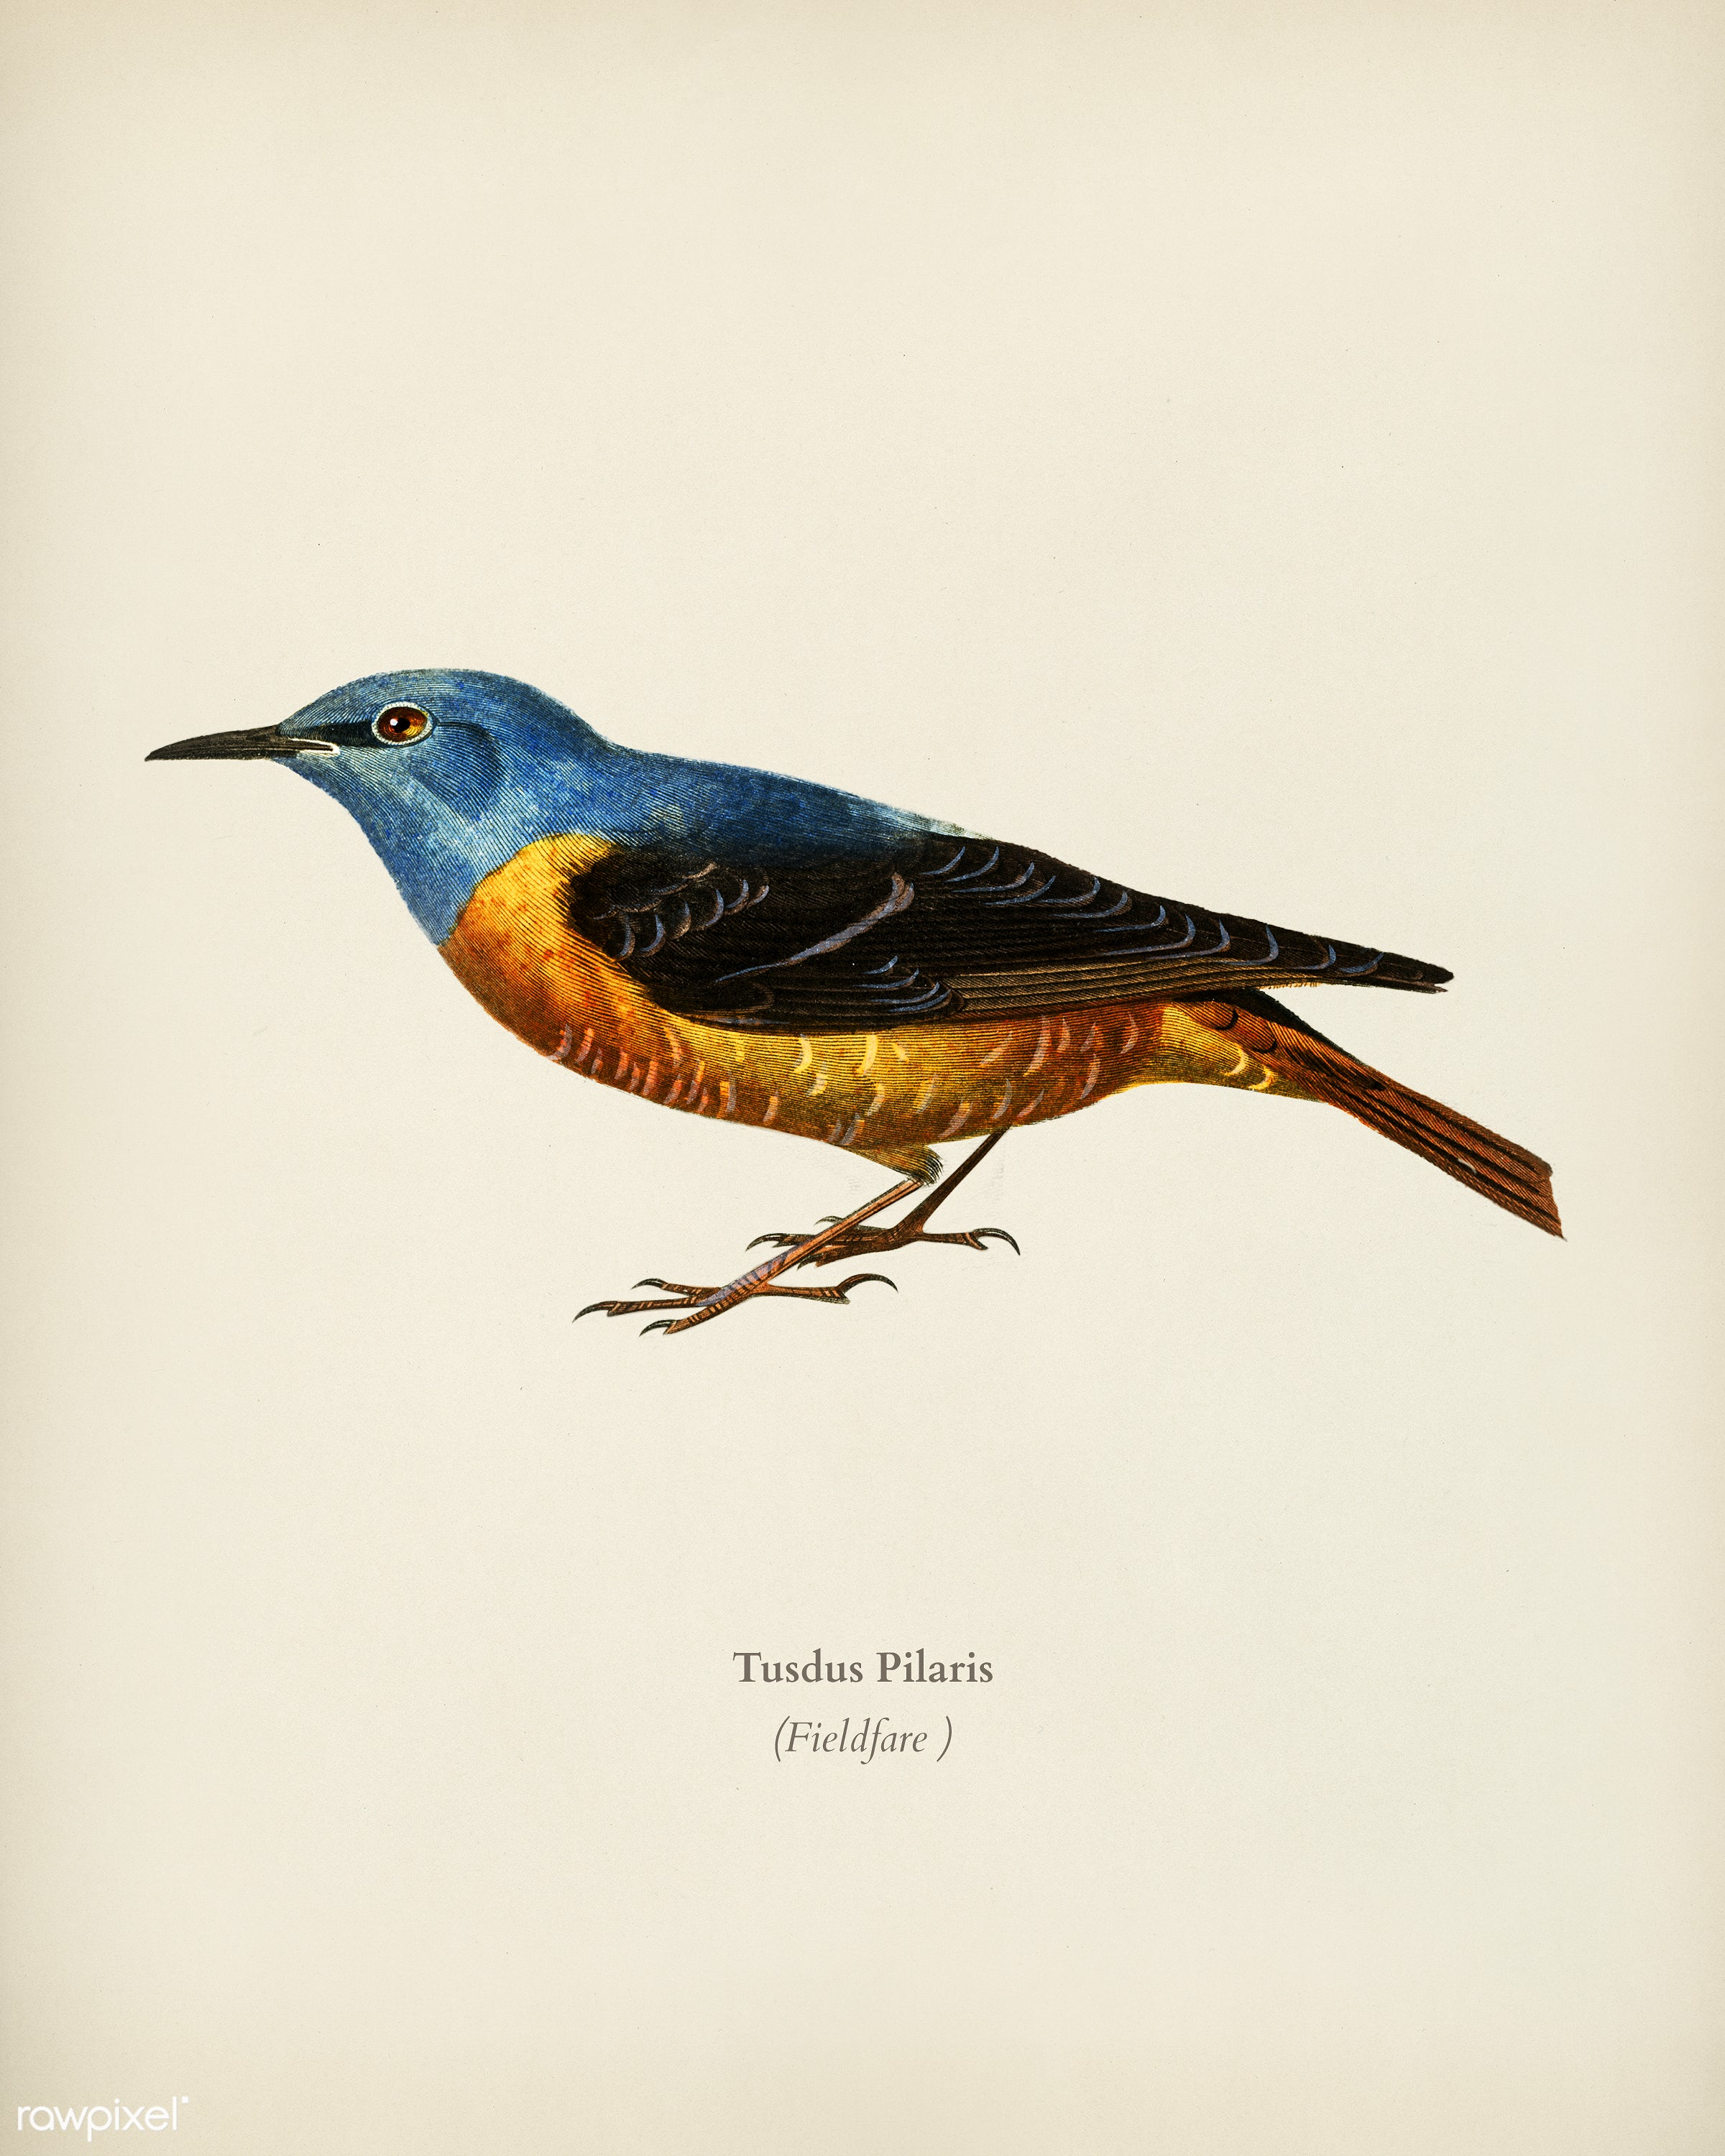 Fieldfare (Tusdus Pilaris) illustrated by Charles Dessalines D' Orbigny (1806-1876). Digitally enhanced from our own...